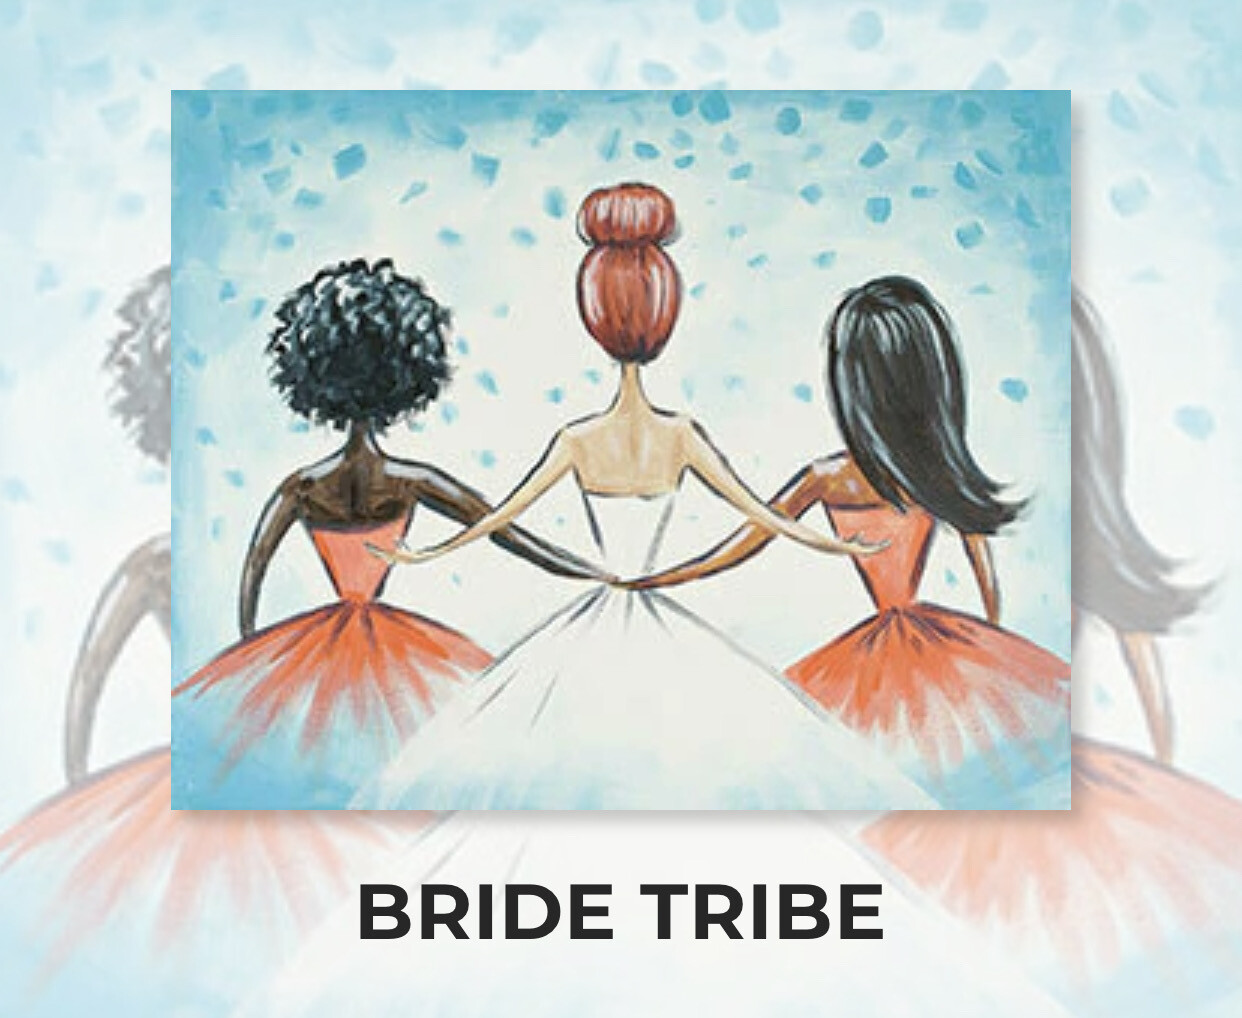 Bride Tribe ADULT Acrylic Paint On Canvas DIY Art Kit - 3 Week Special Order